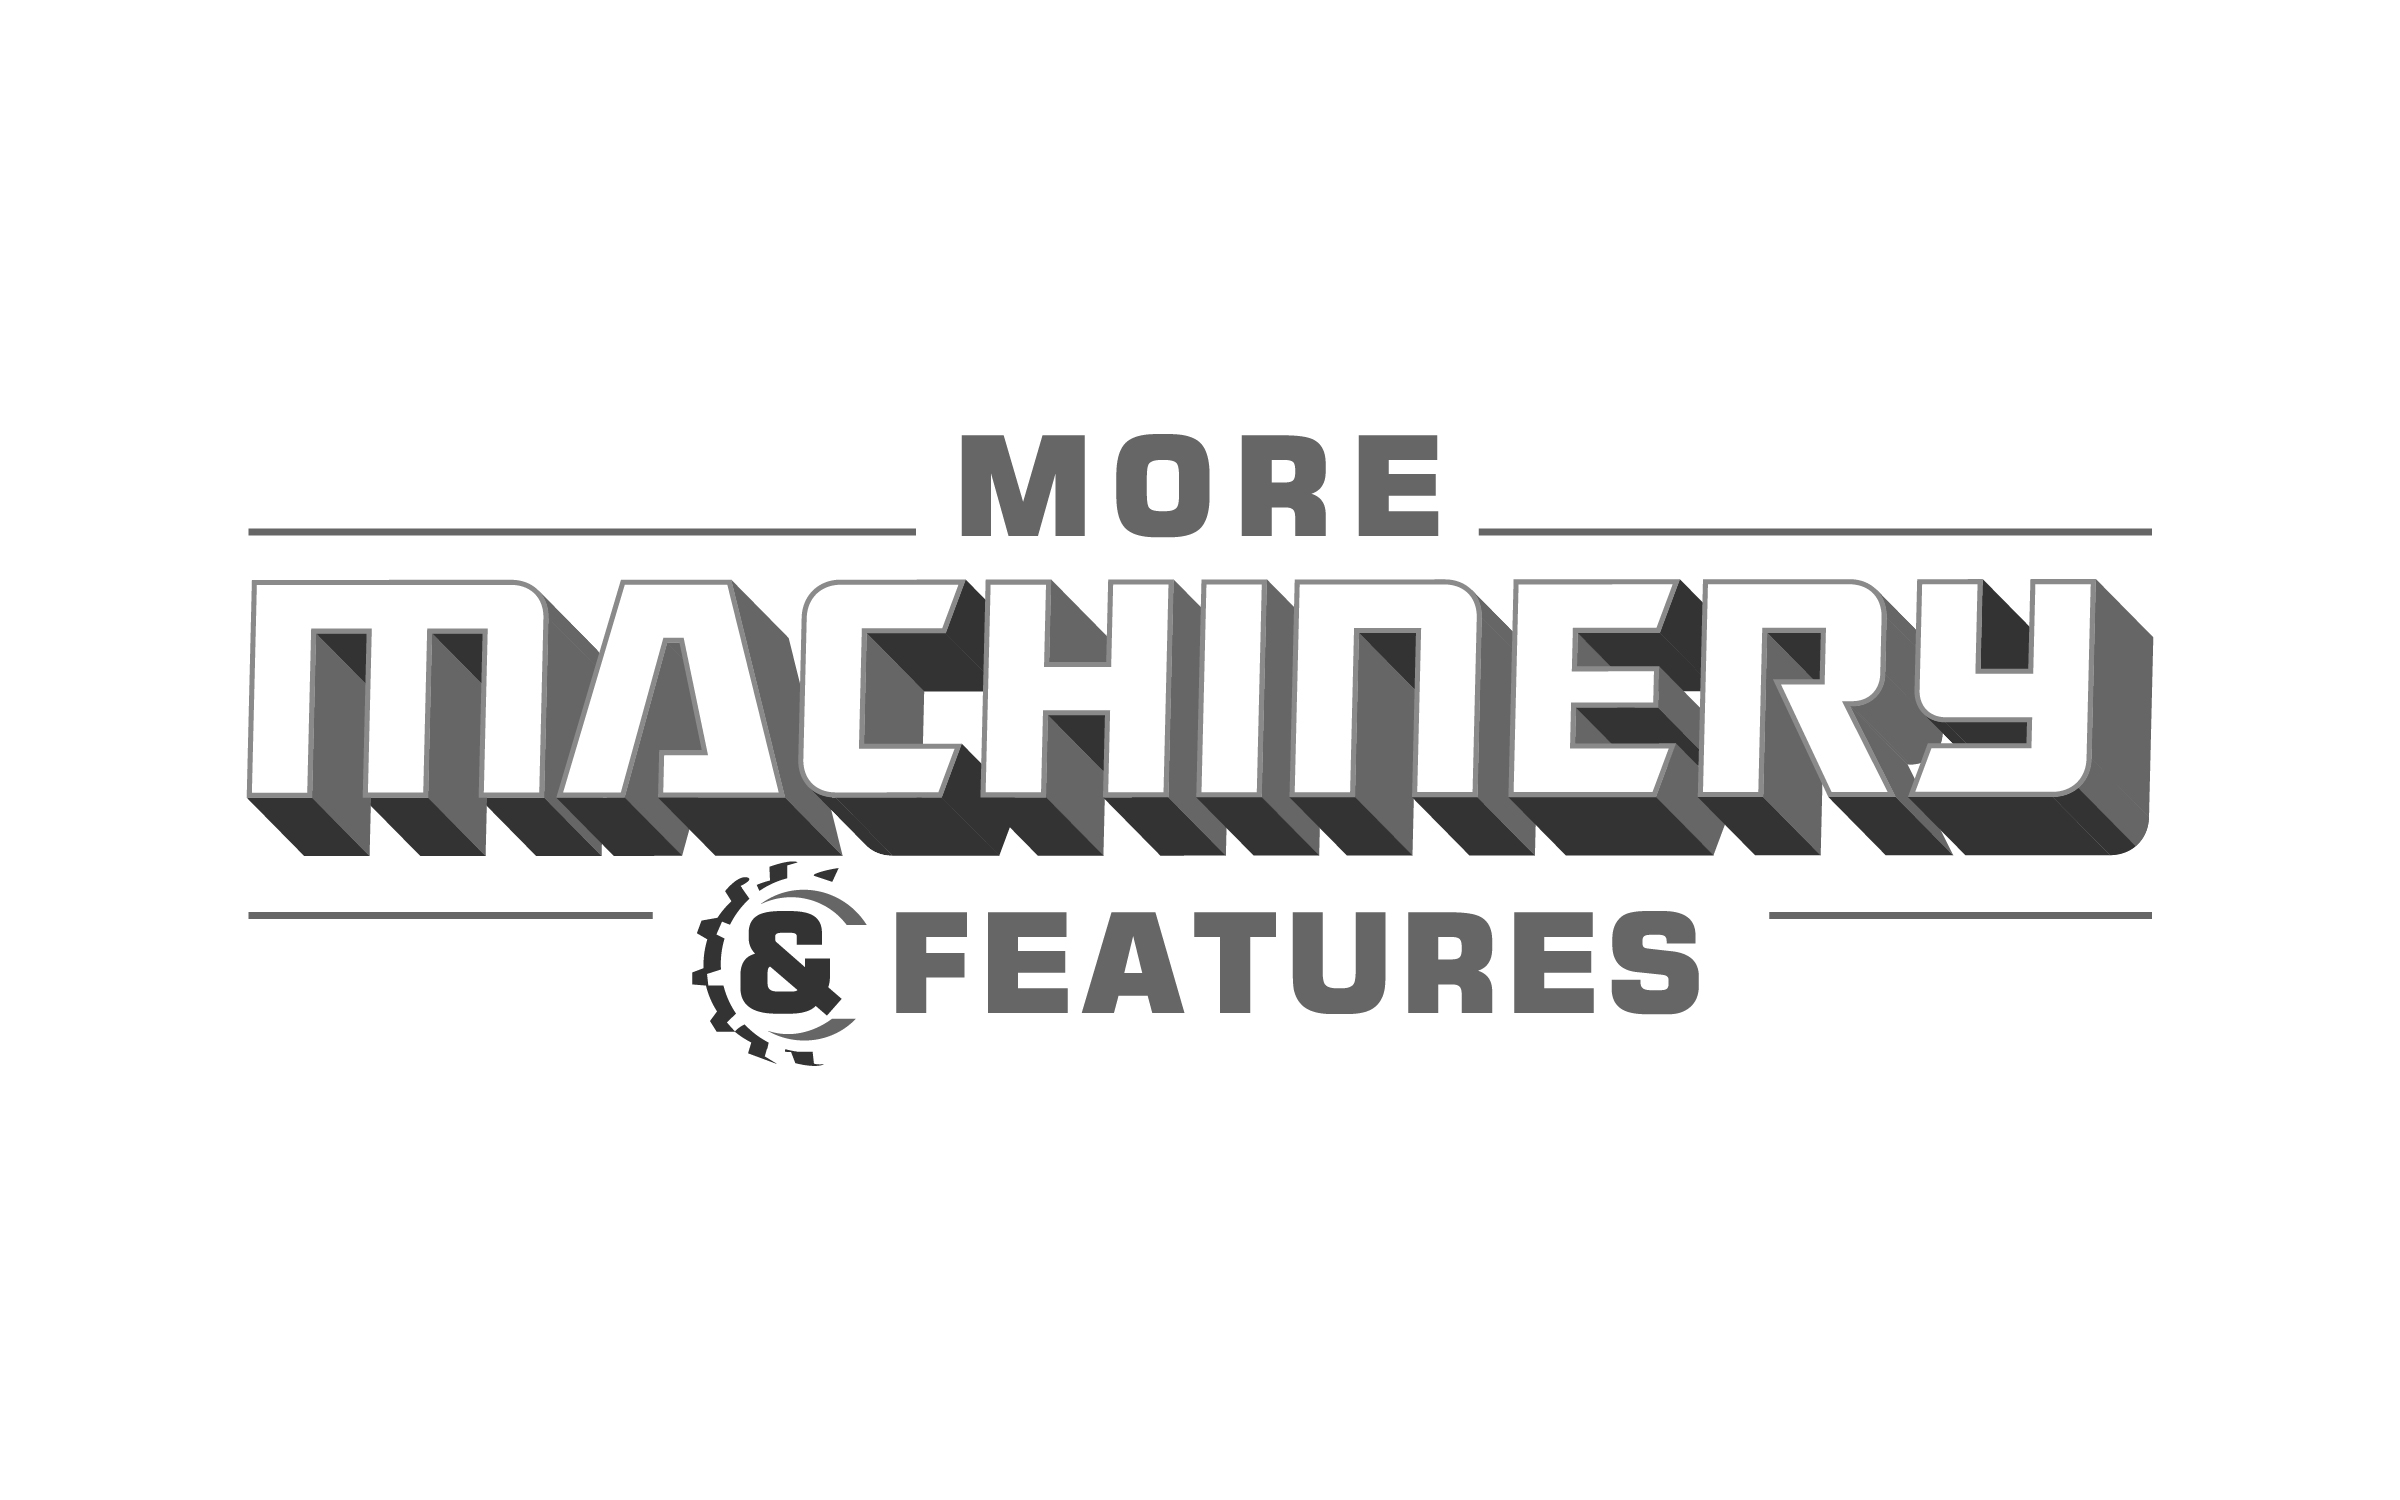 More Machinery & Features-01.jpg